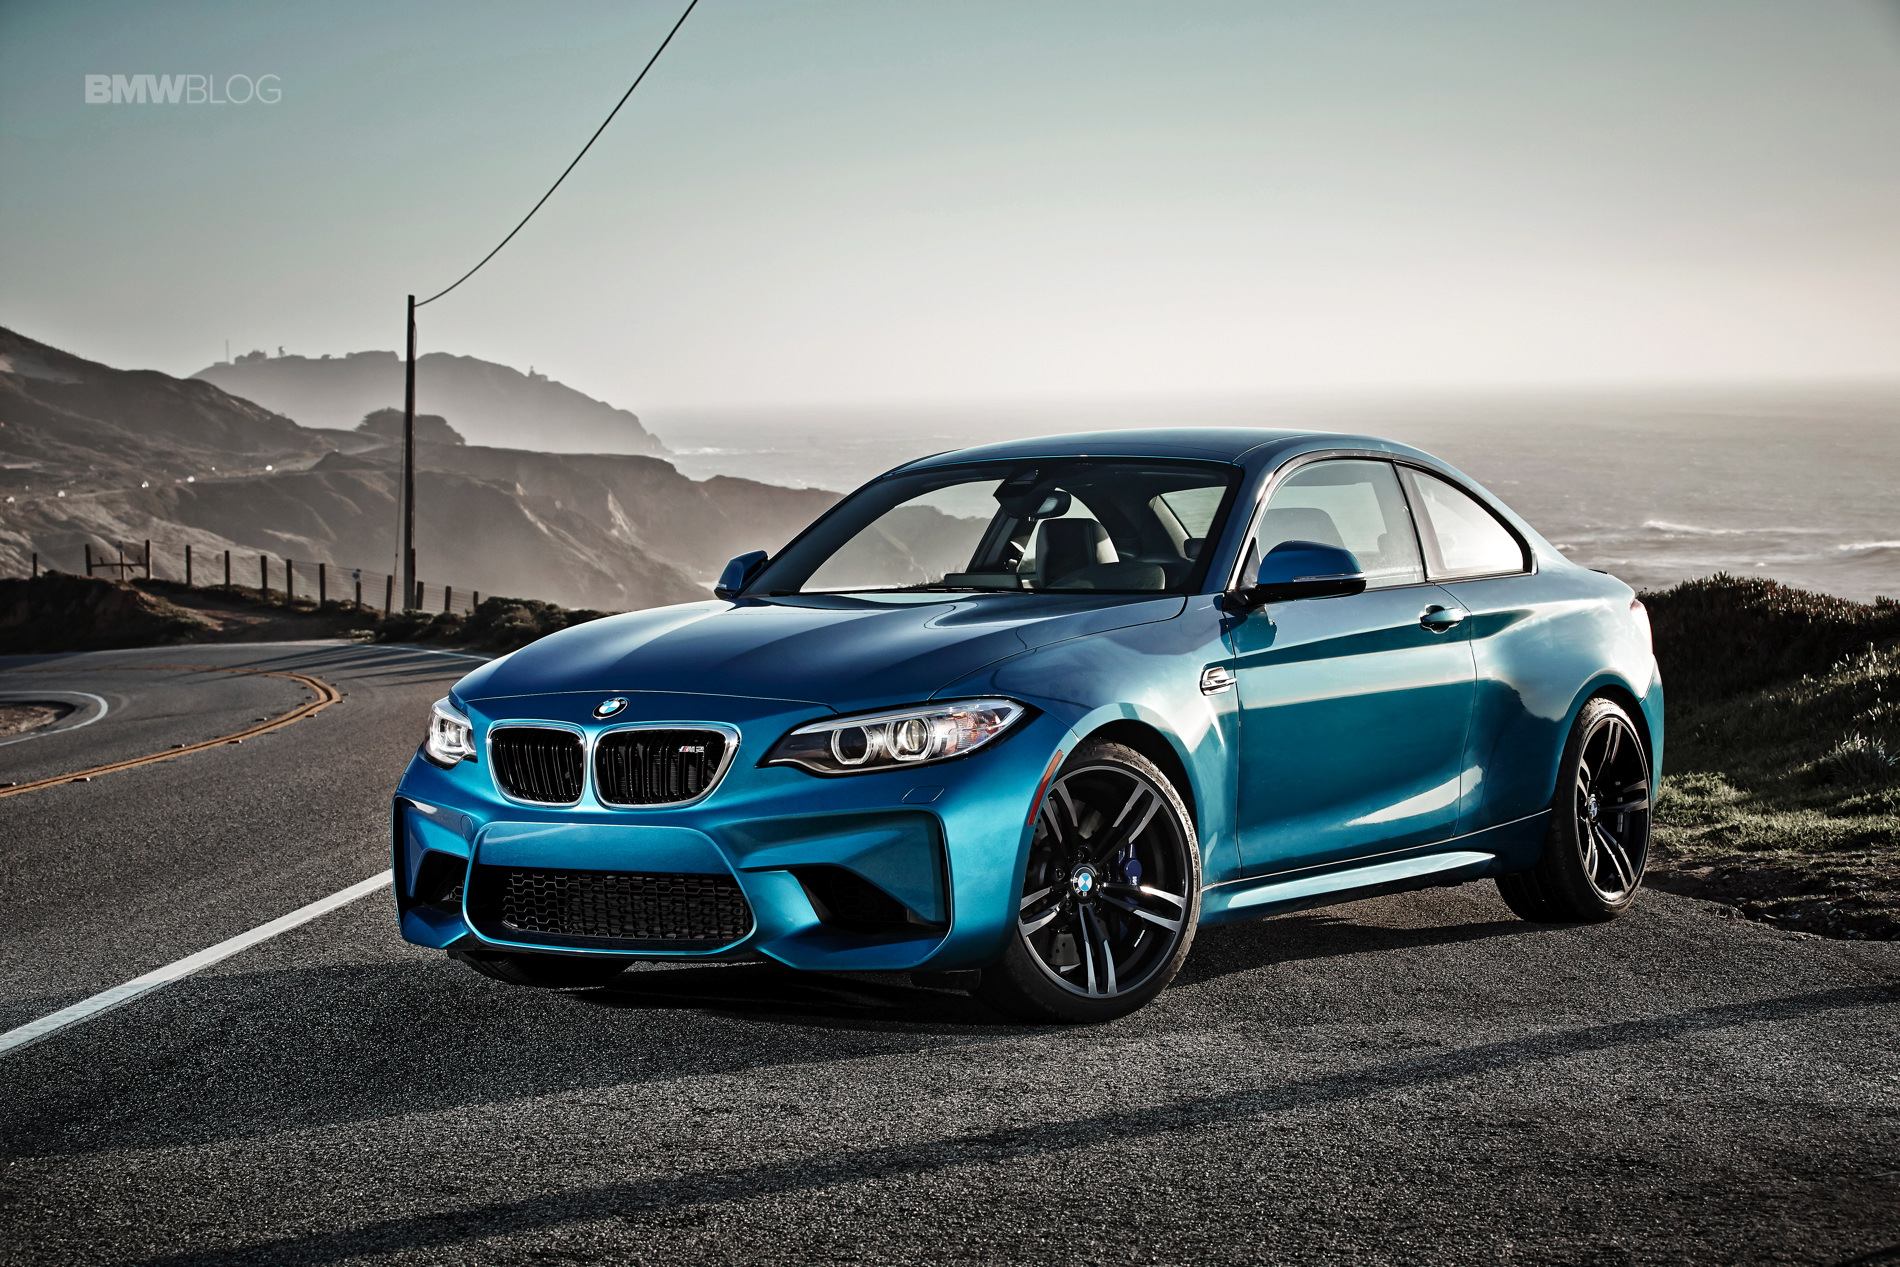 Hd Wallpapers Of New Audi Cars Some Things We Wish The Bmw M2 Had